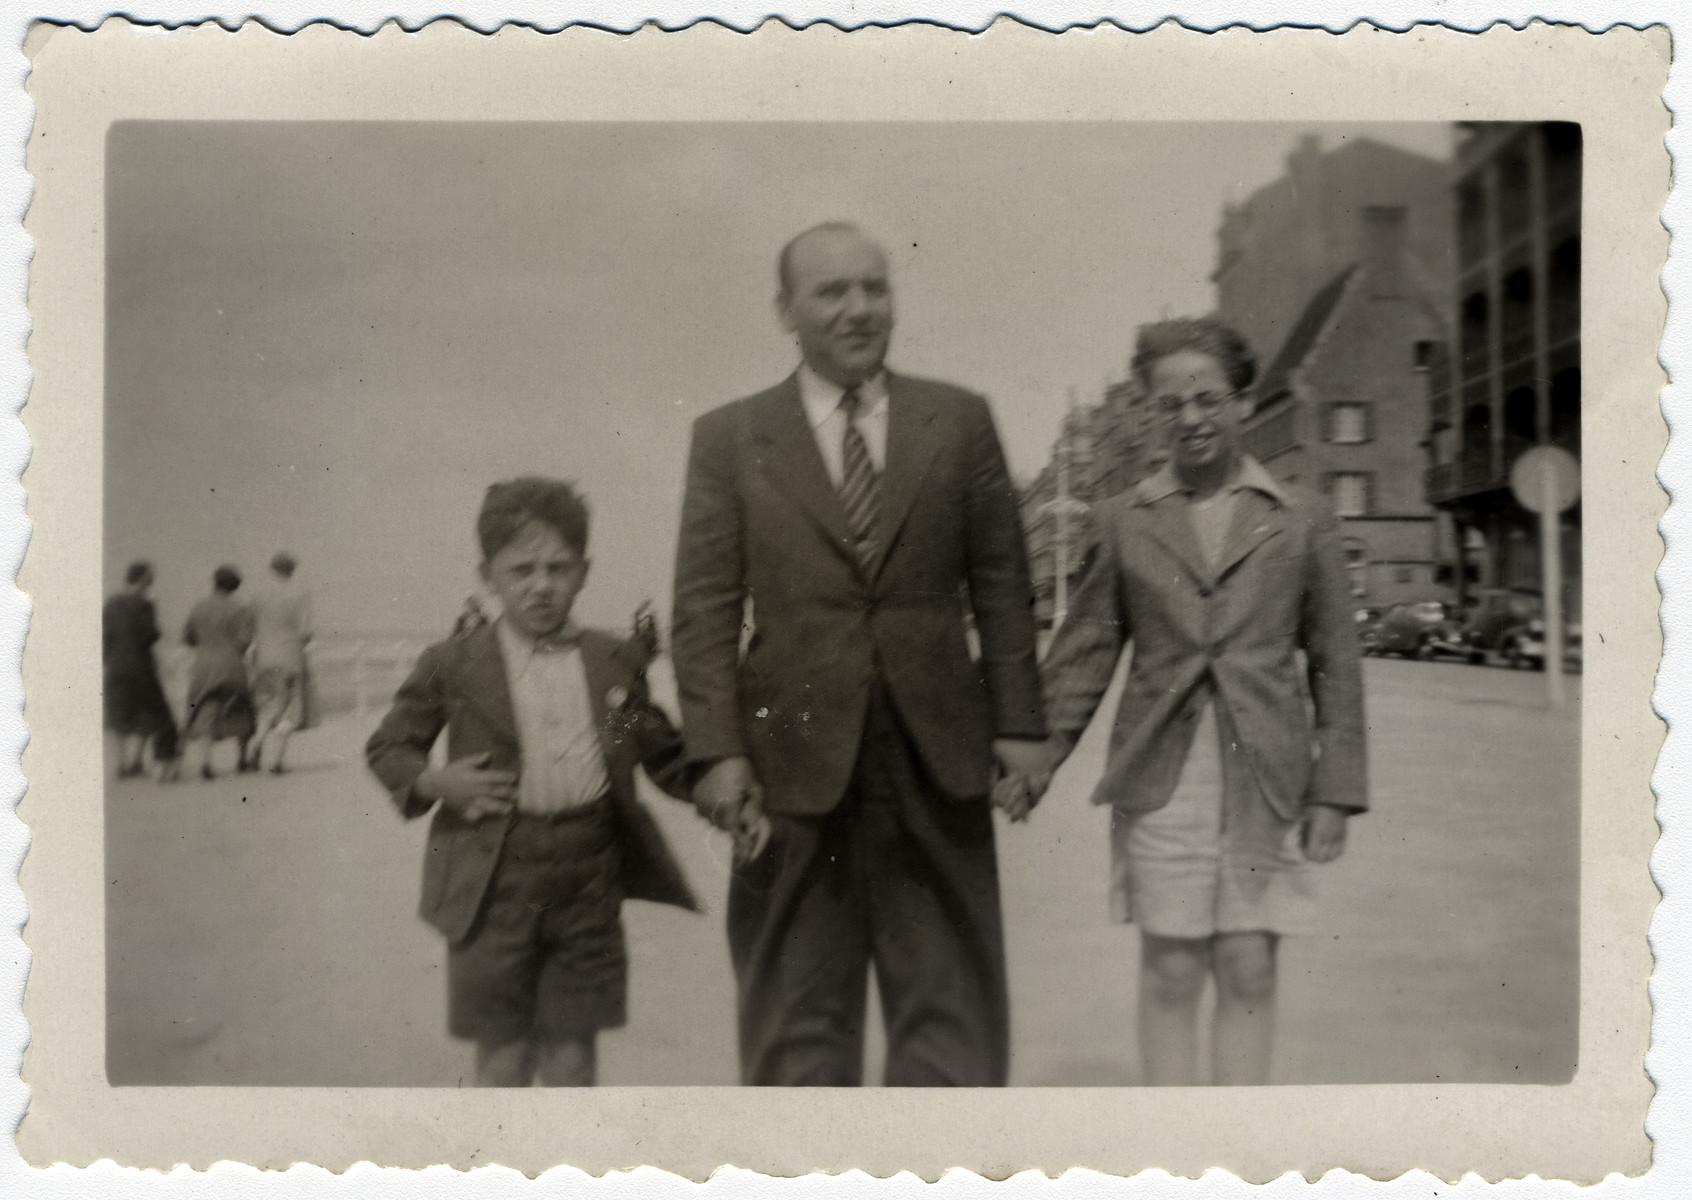 Kurt Frost, an Austrian Jewish boy who came to Belgium on a Kindertransport, walks down the street with his foster family.  From left to right are Henri Korn, his father and Kurt Frost.